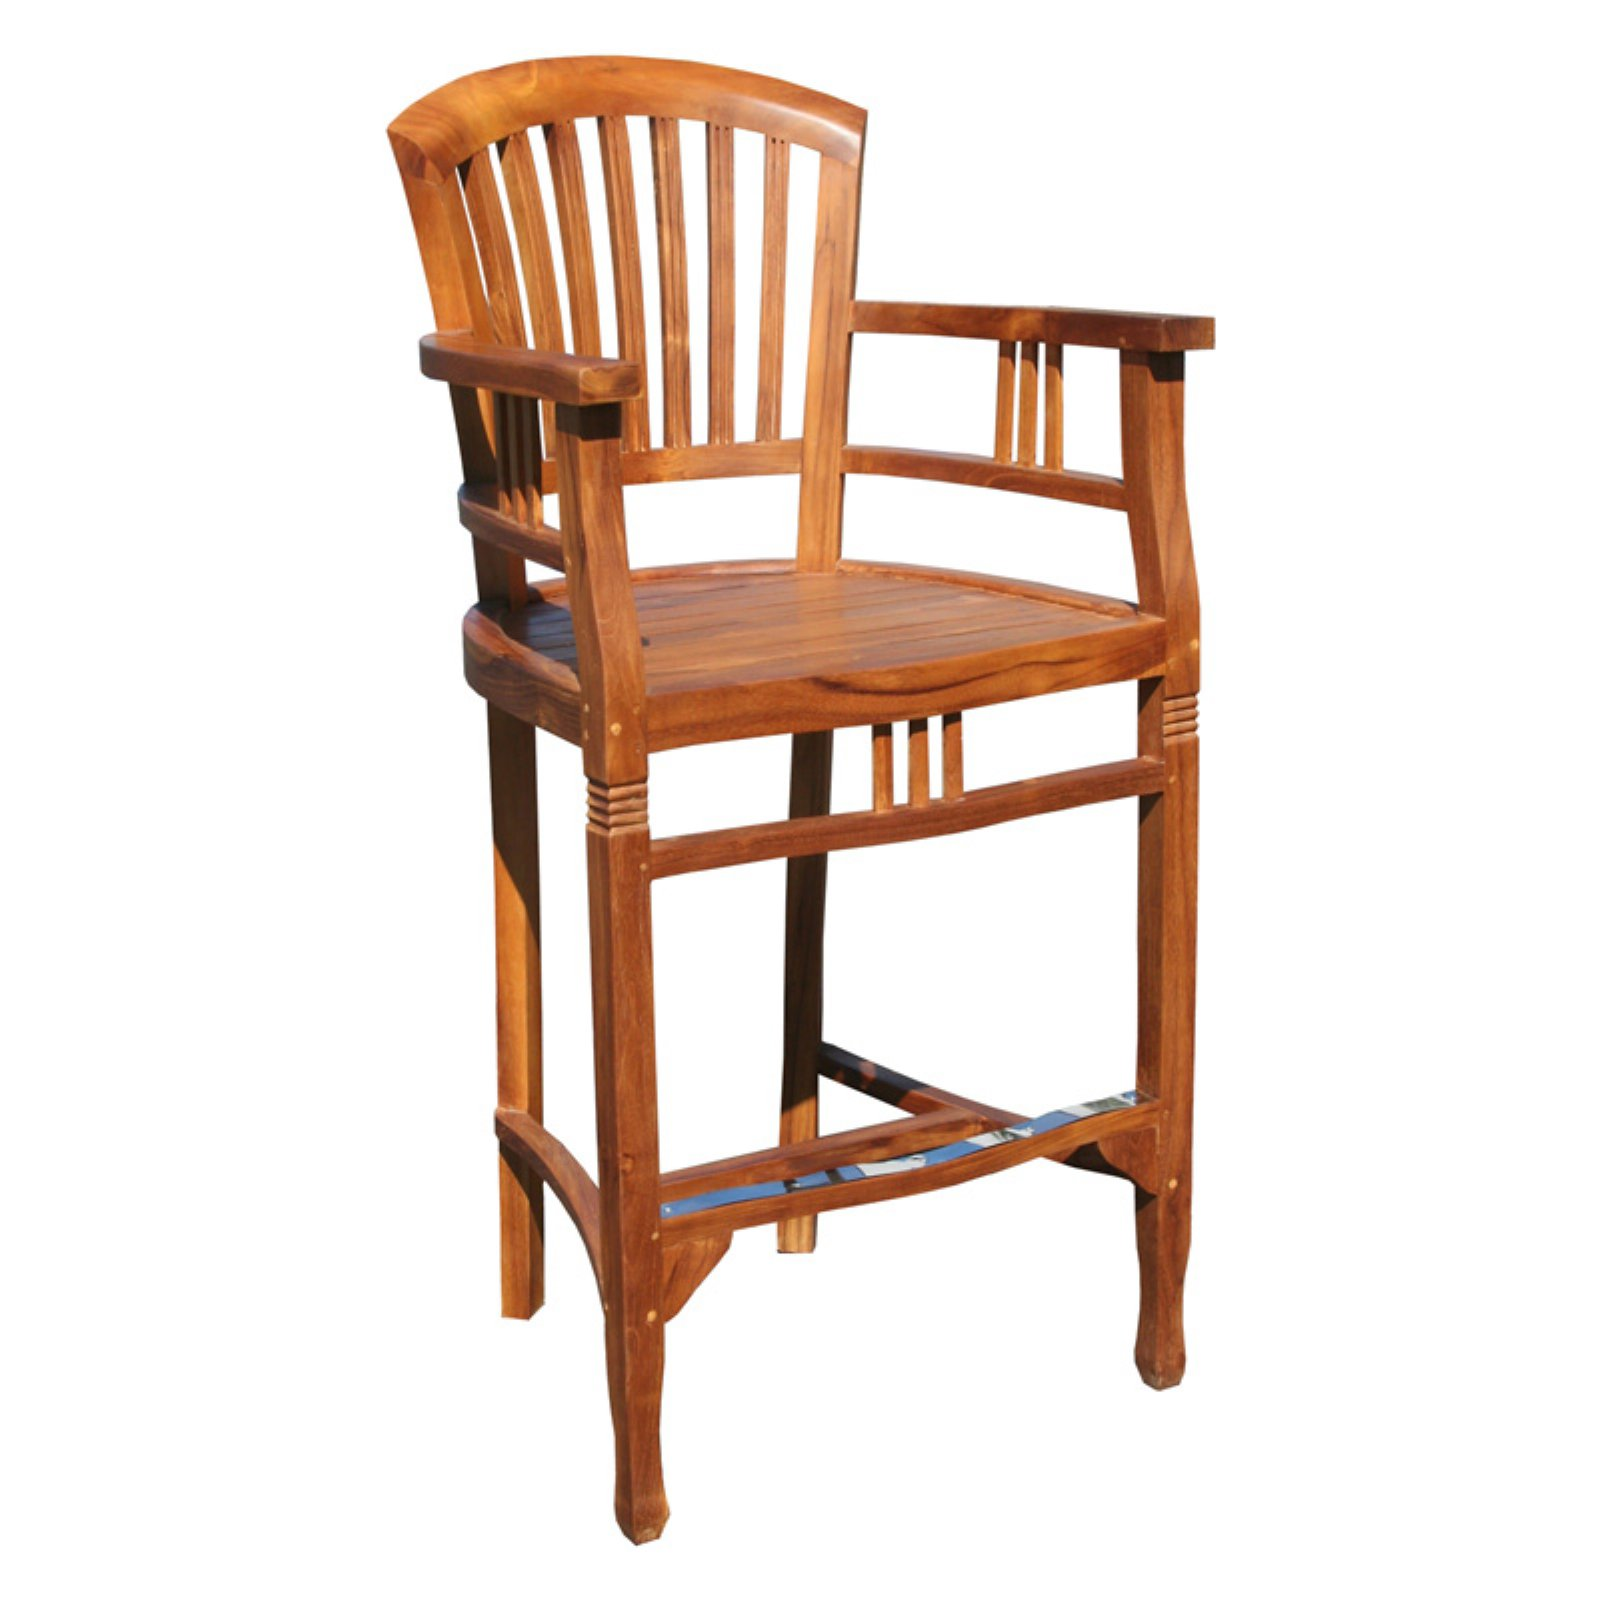 Chic Teak Orleans Teak Outdoor Barstool with Arms